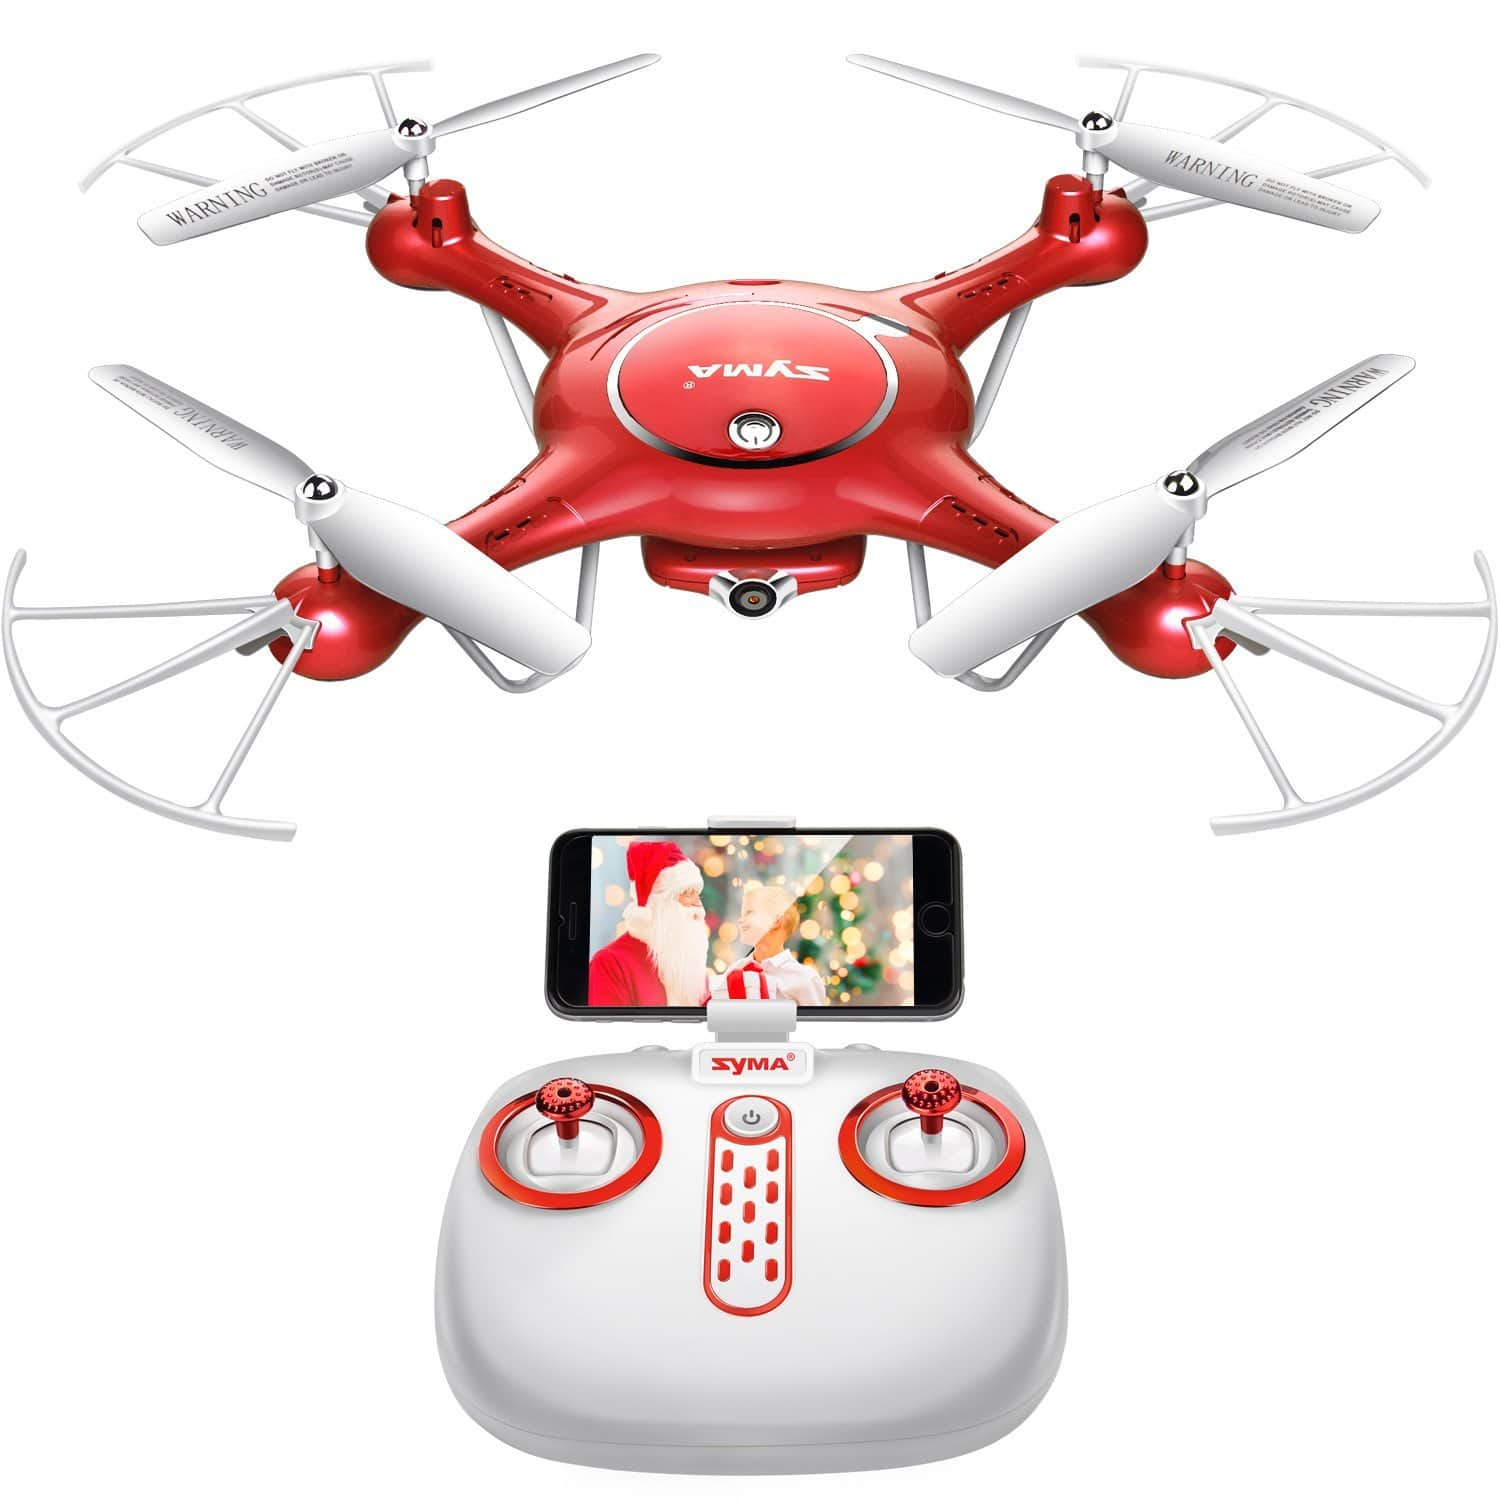 Syma X5UW Wifi FPV 720P HD Camera Quadcopter Drone with App Control & Extra Battery @ Amazon $48 AC